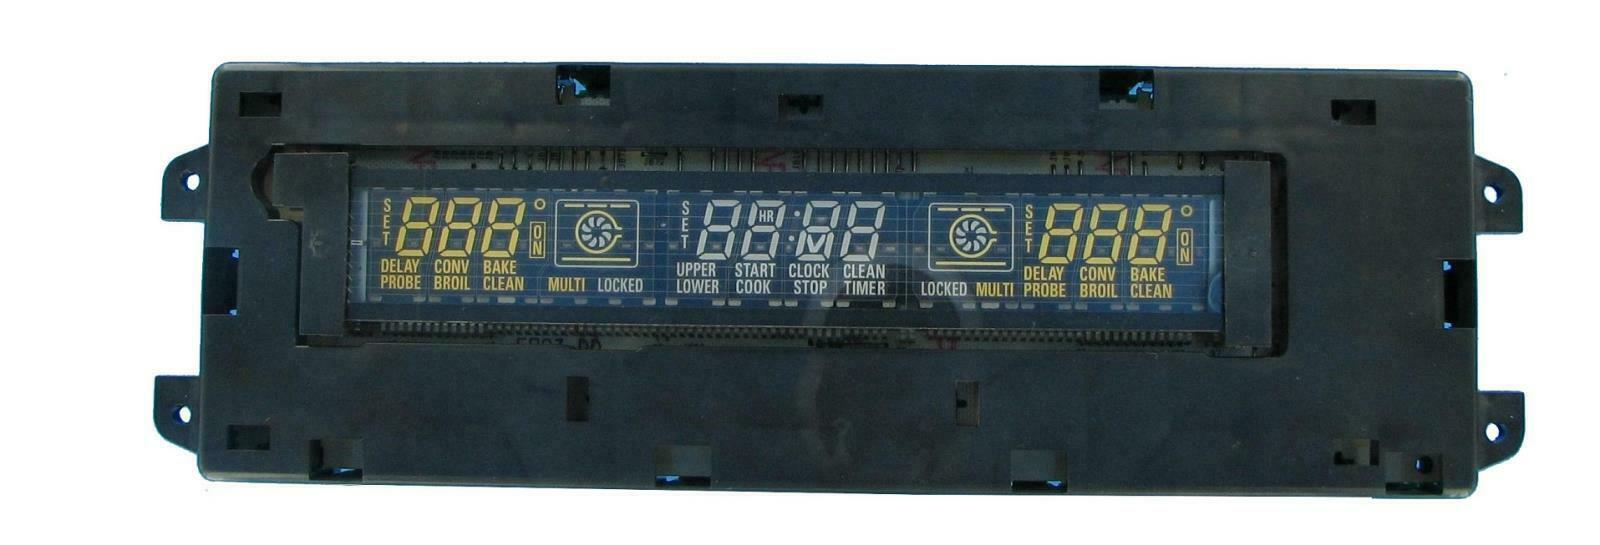 GE Wall Oven Display Control Board WB27T10547